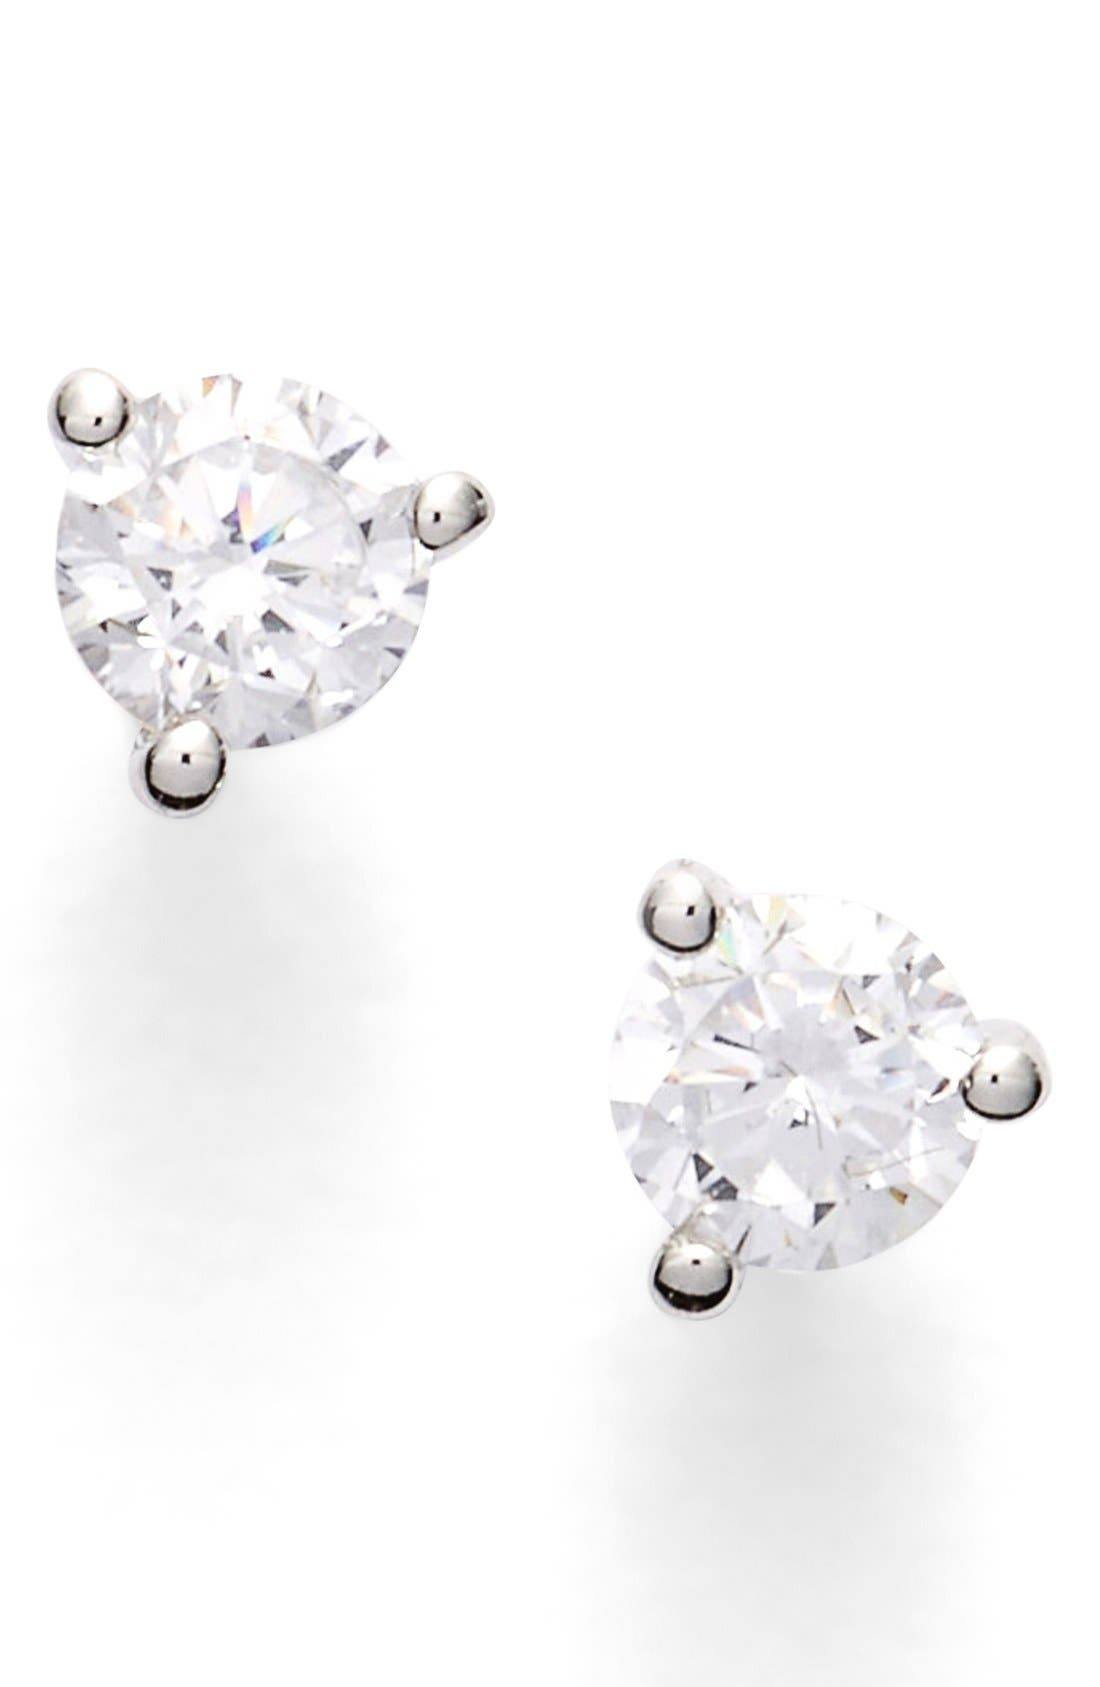 0.25ct tw Cubic Zirconia Stud Earrings,                         Main,                         color, Silver